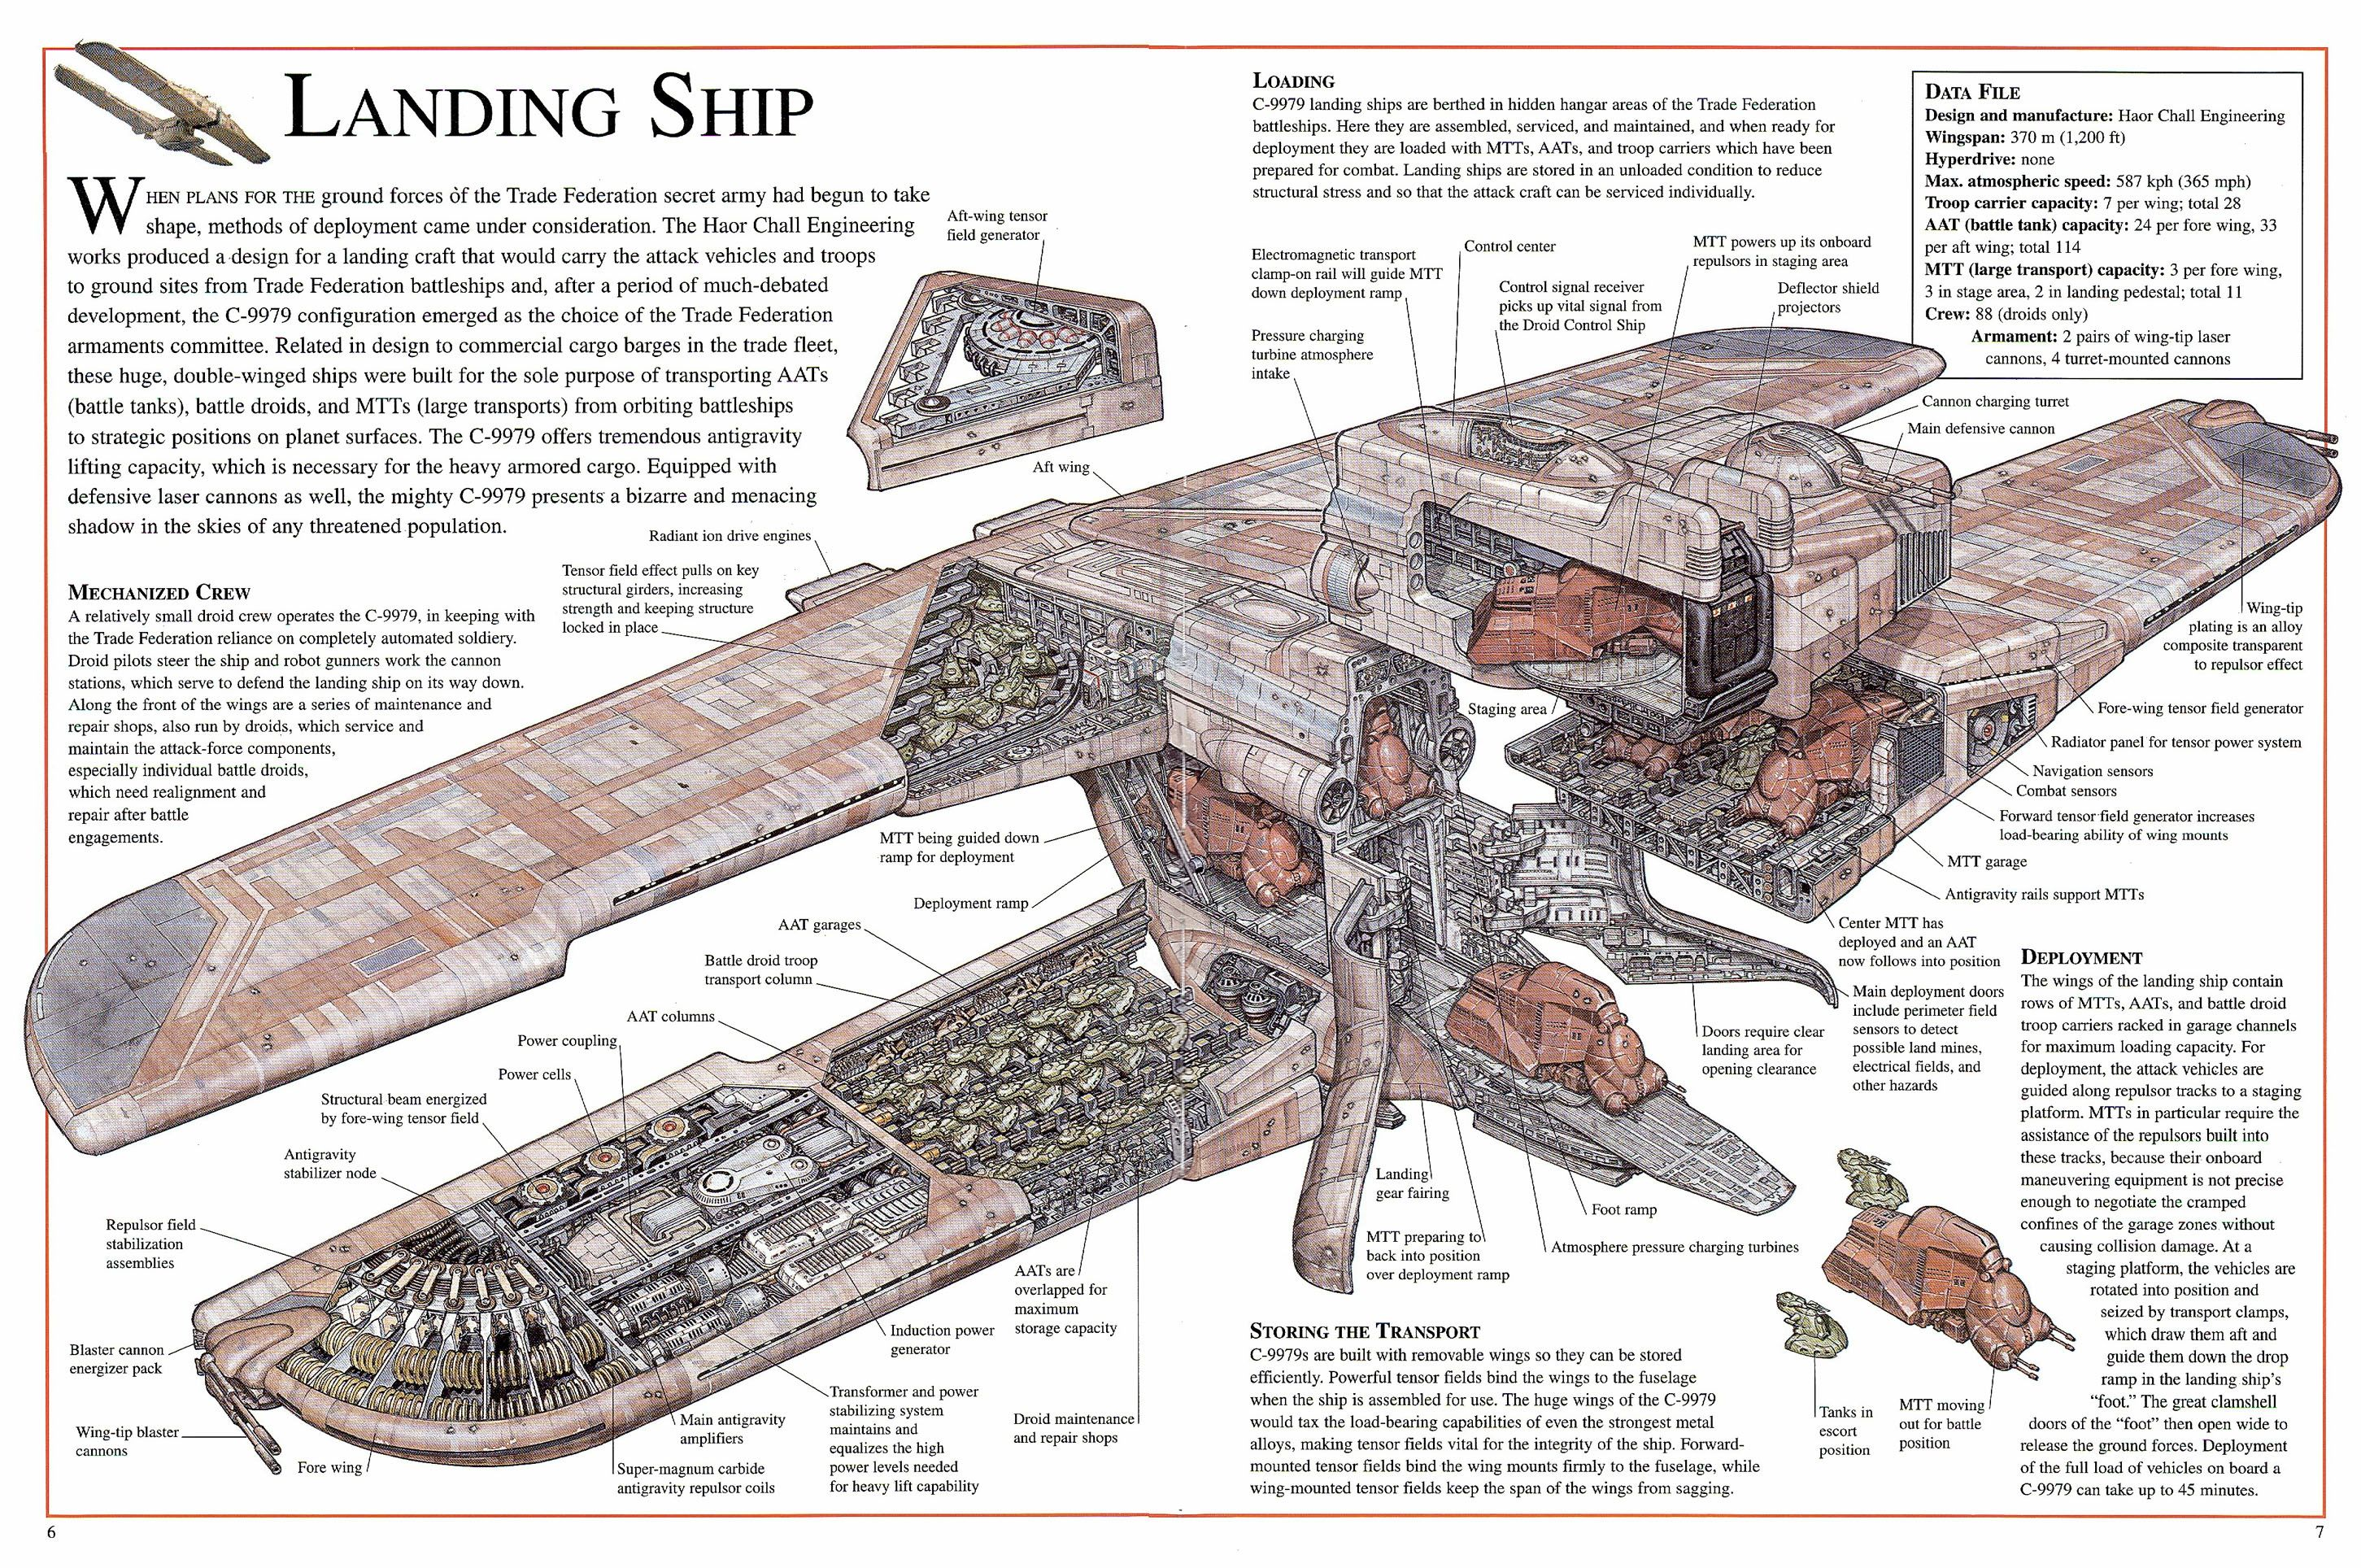 What are some good ship designs from Star Wars in your